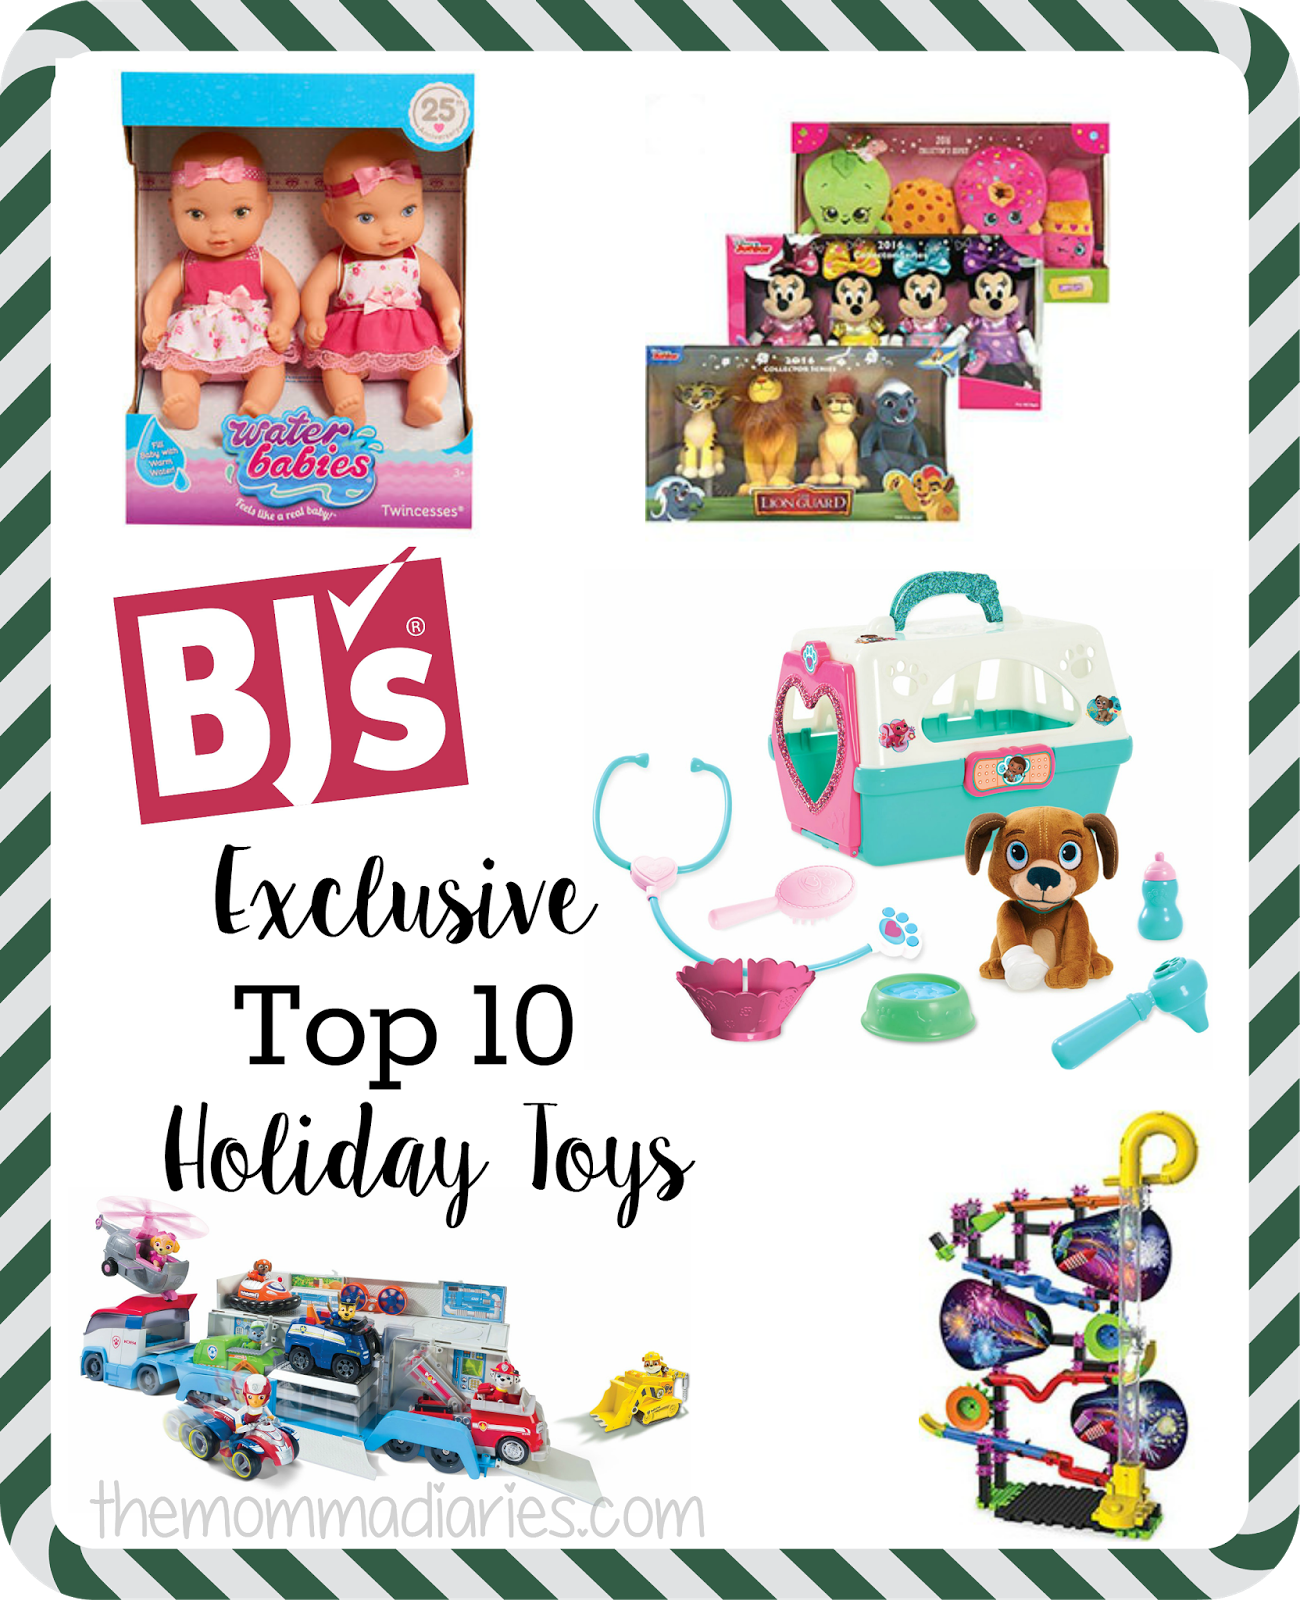 BJ s Exclusive Top 10 Holiday Toys The Momma Diaries